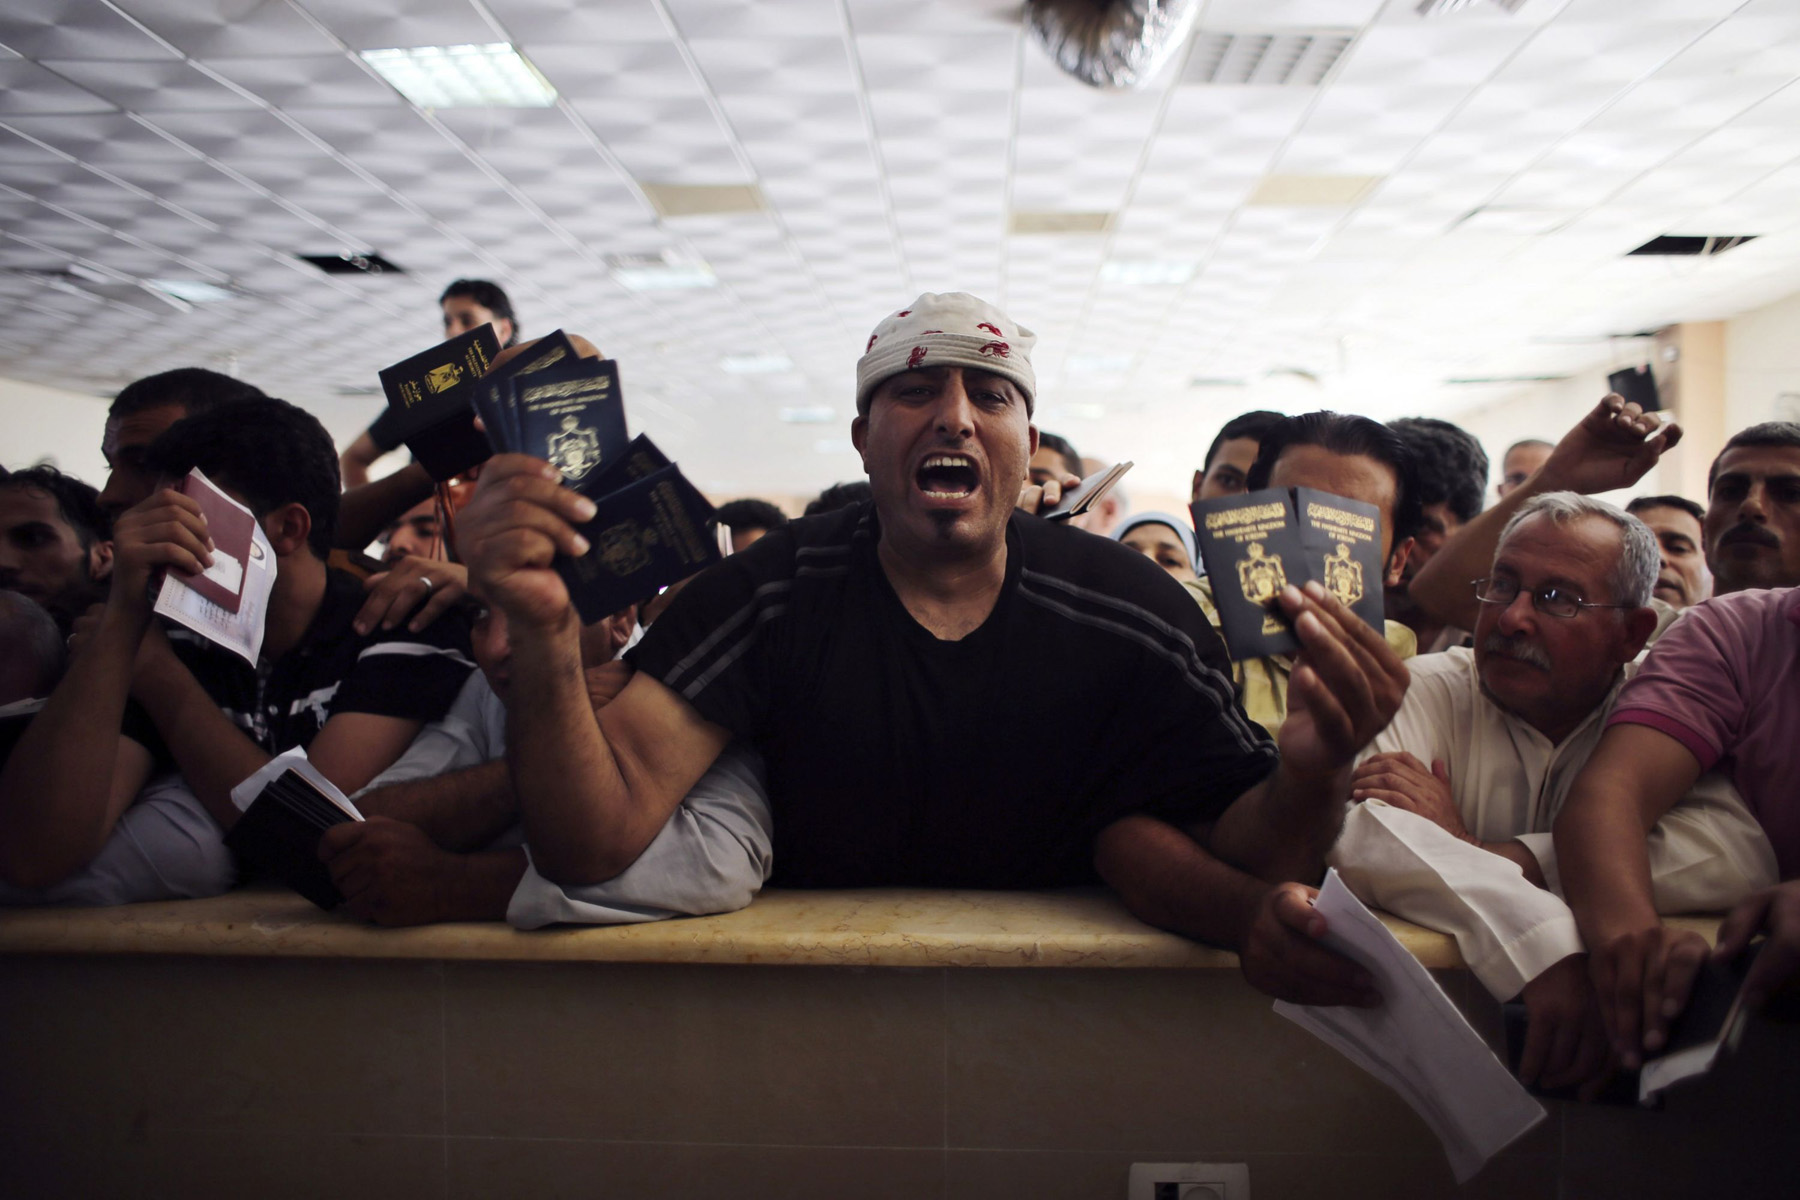 A Palestnian man, who is hoping to cross into Egypt, shouts as he holds his passport and other family members' passports at the Rafah border crossing. (Reuters)